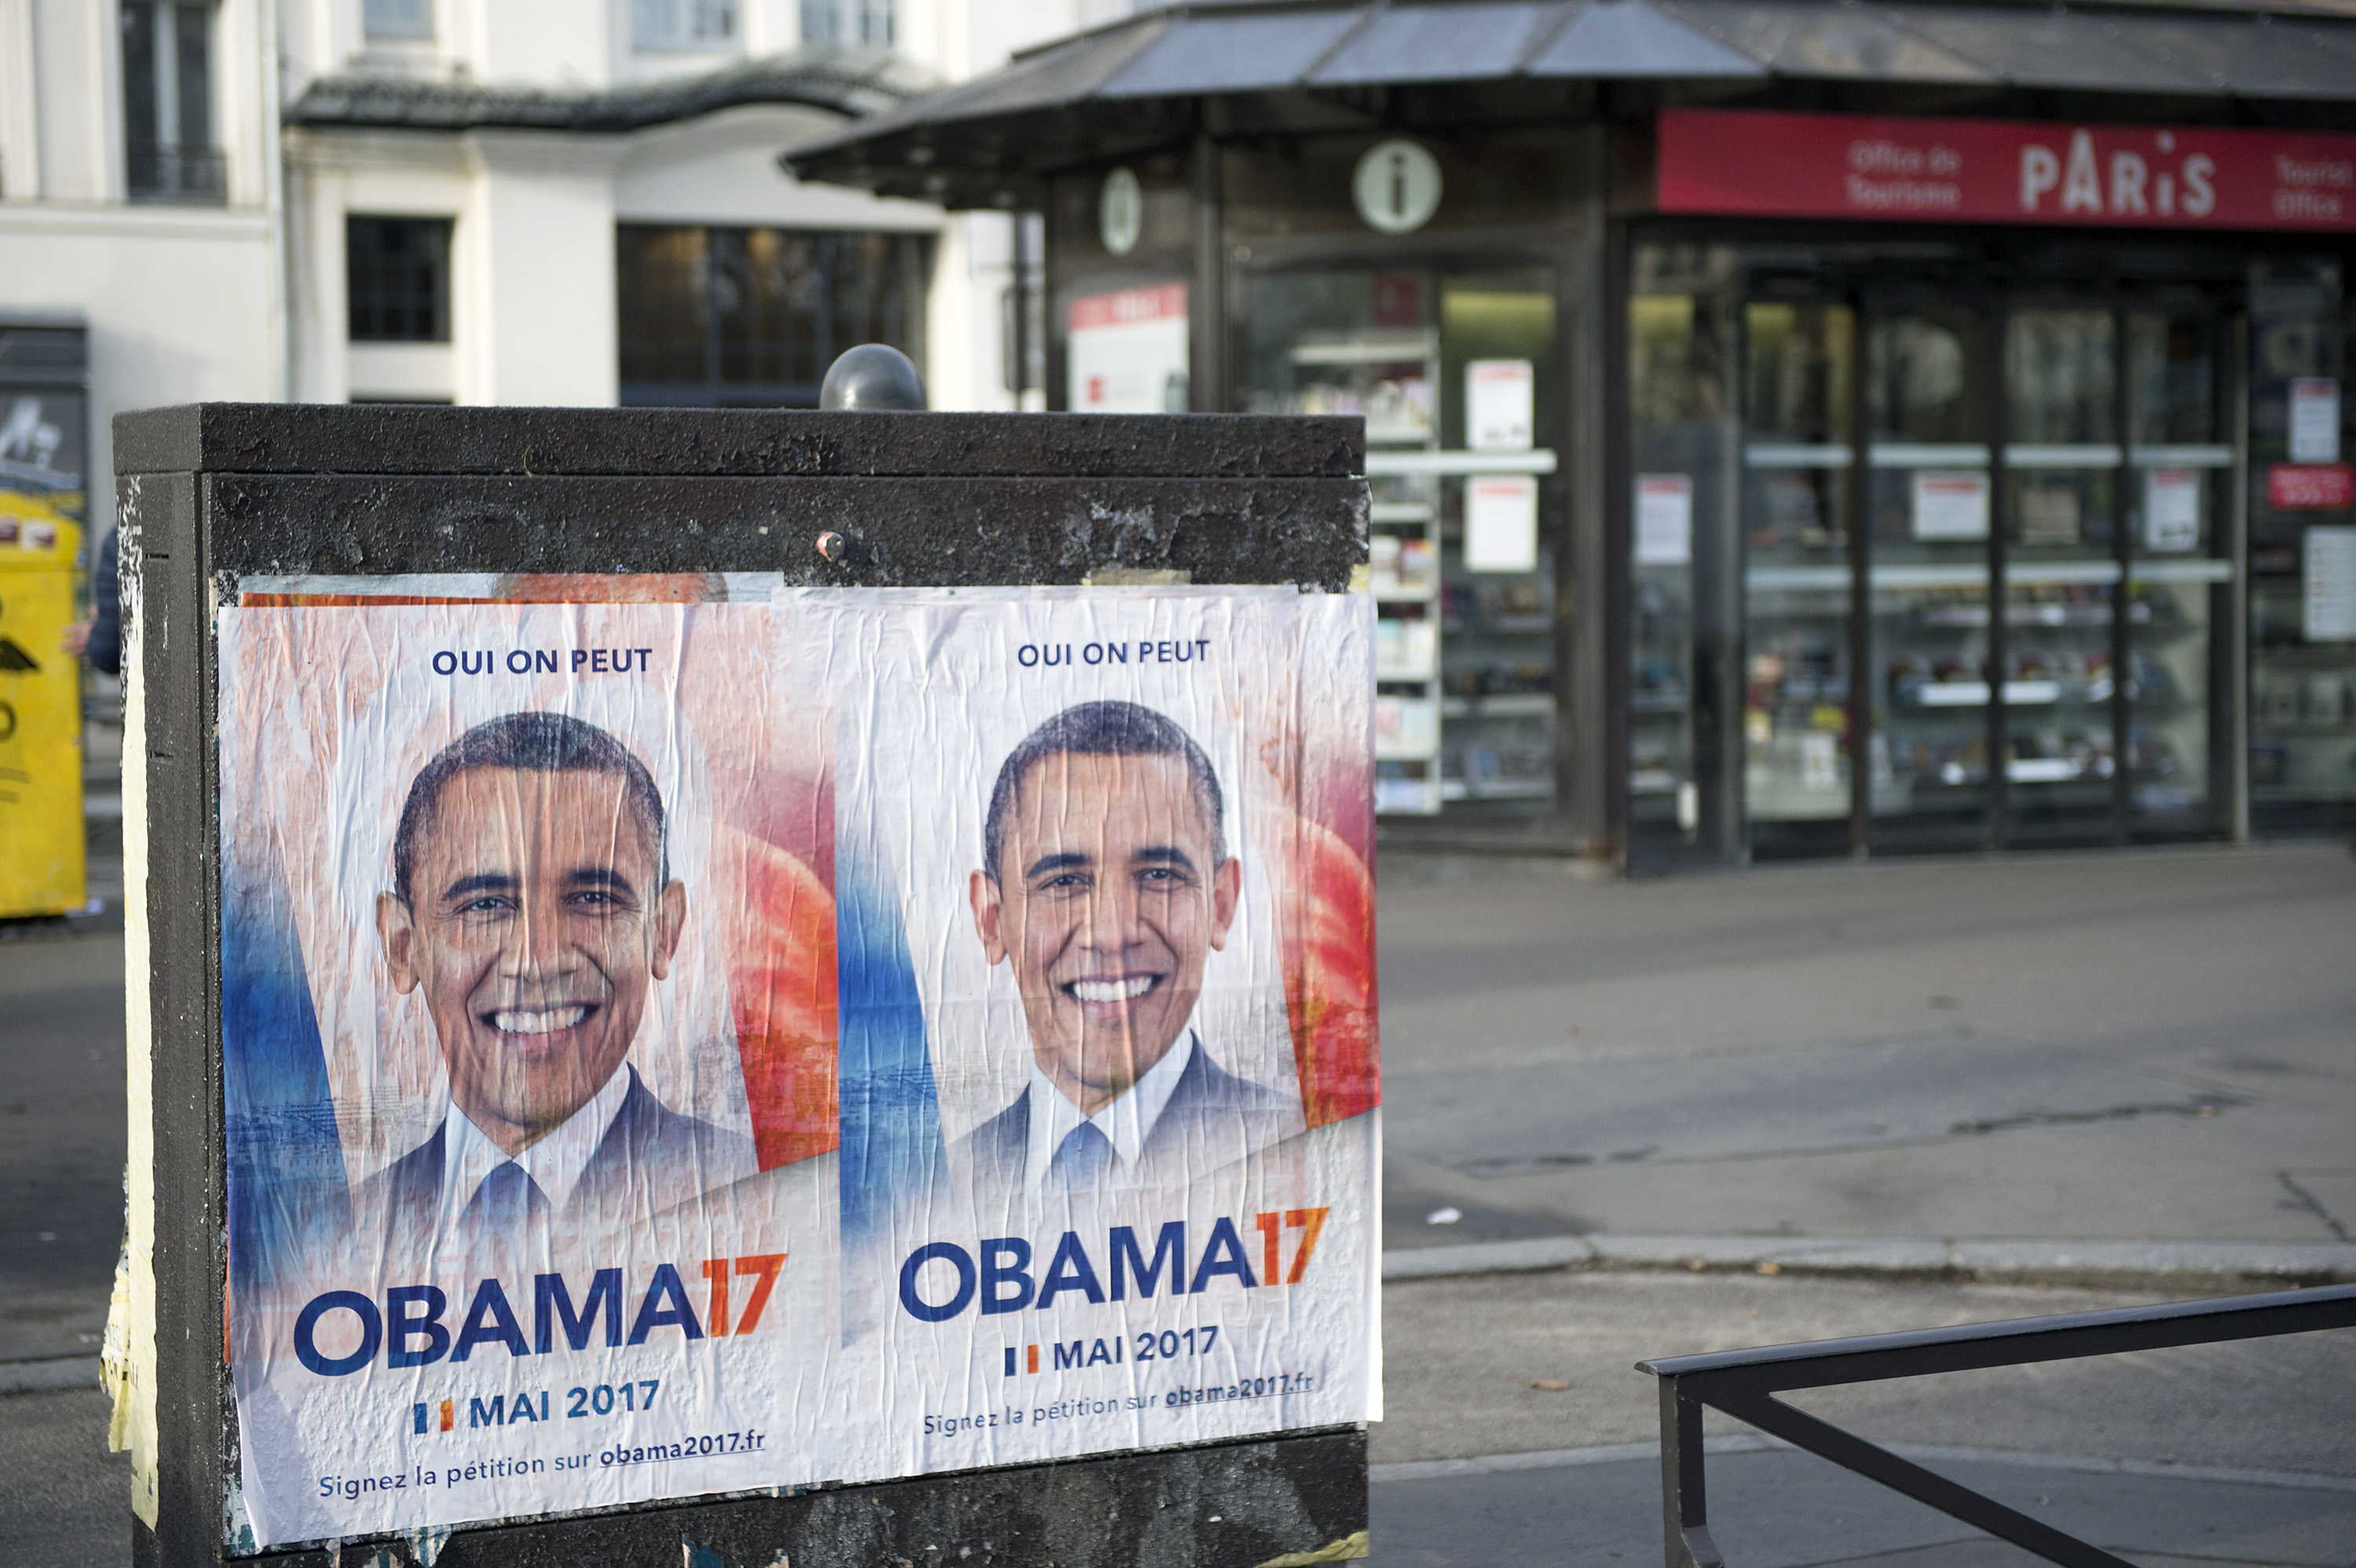 Obama 17 posters are seen displayed on Feb. 23, 2017 in Paris, France.